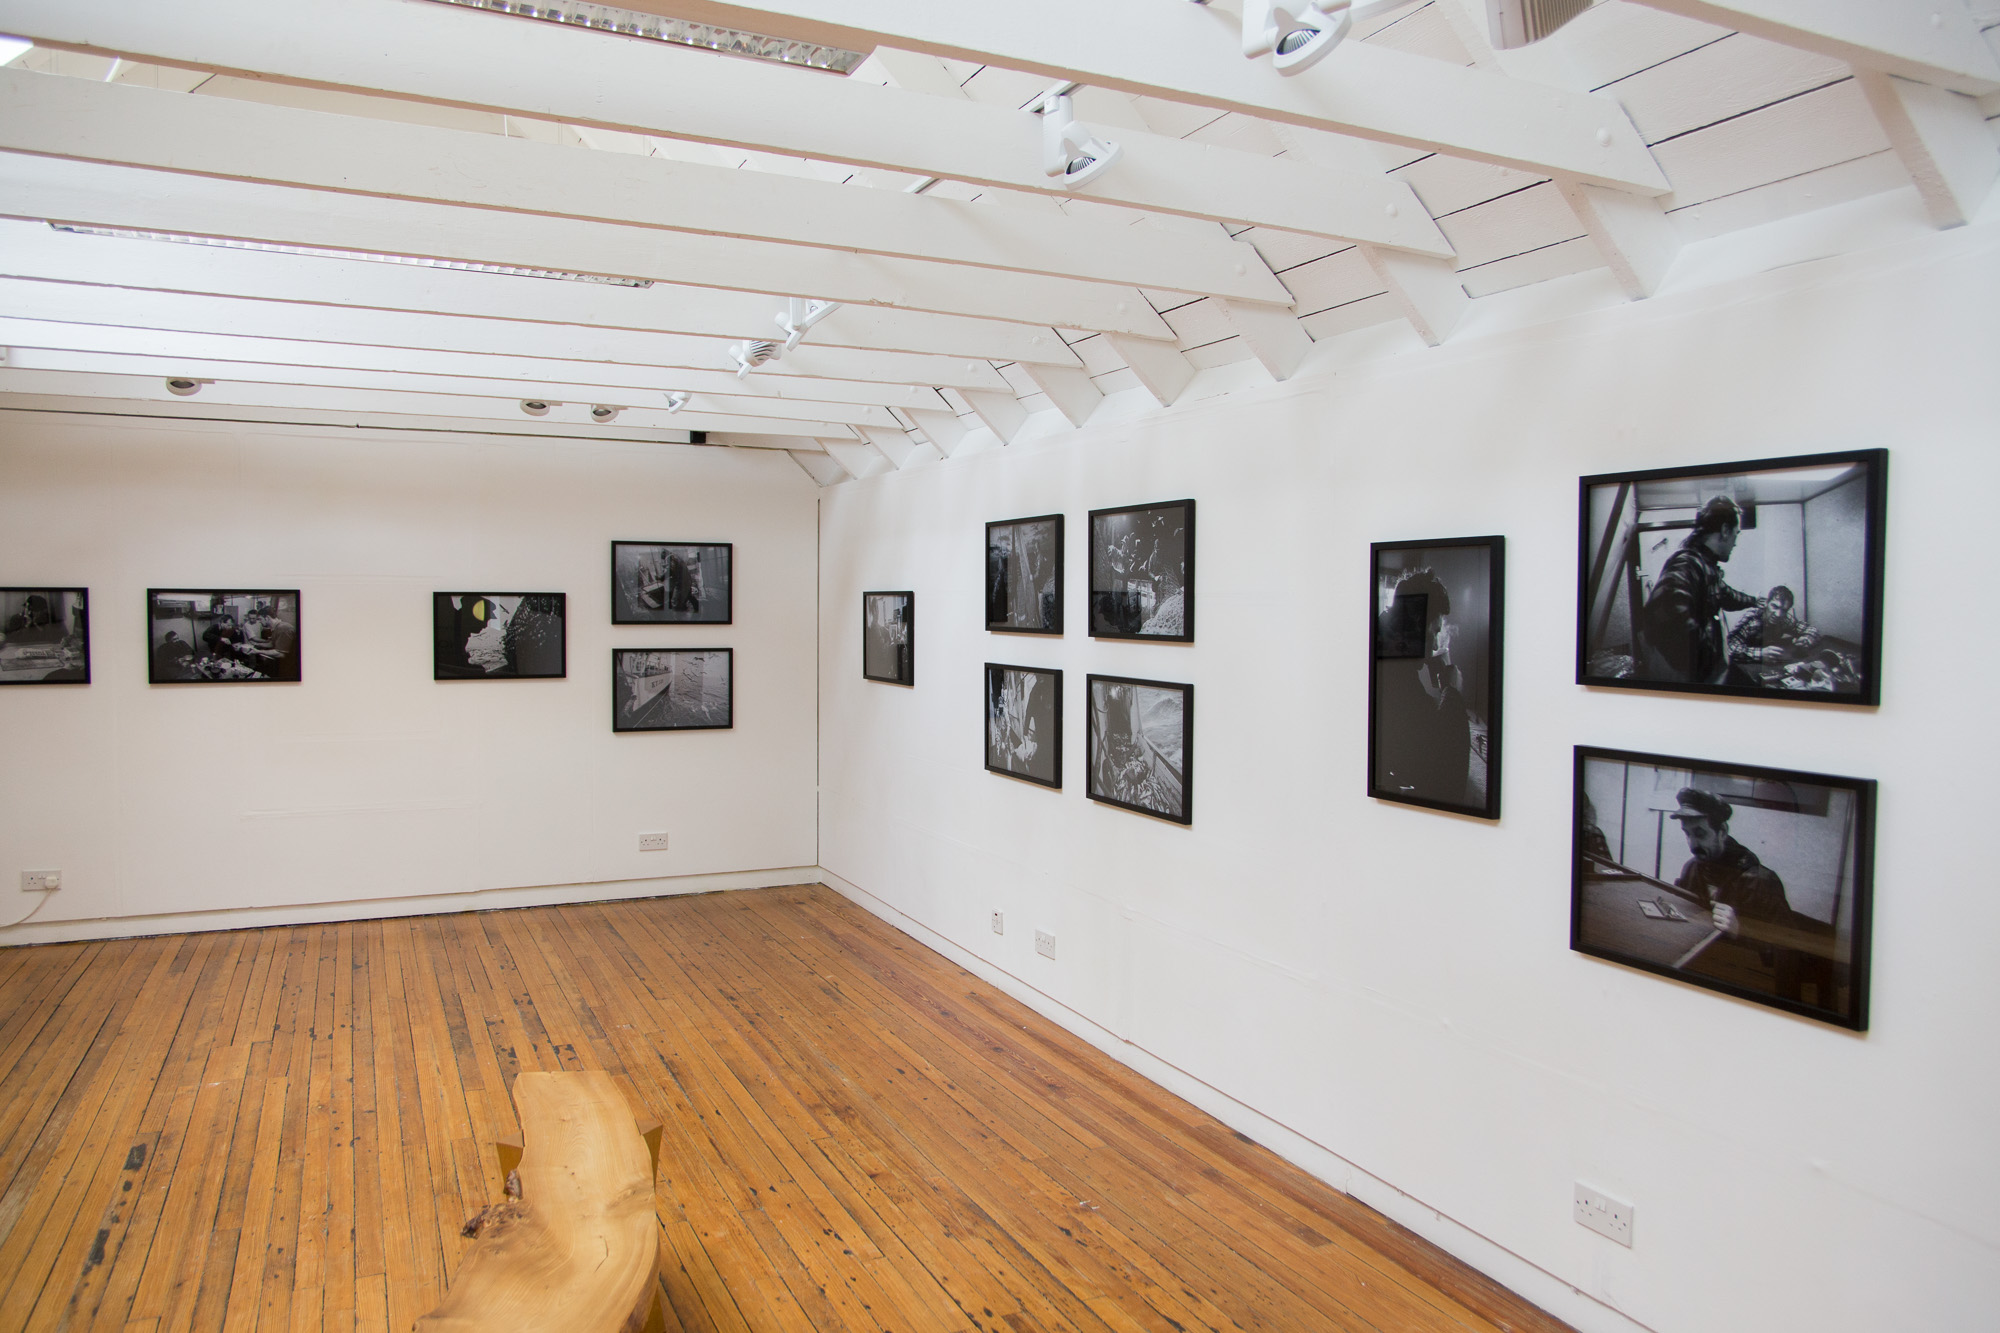 North Sea Fishing photography exhibition, Bonhoga Gallery, Shetland